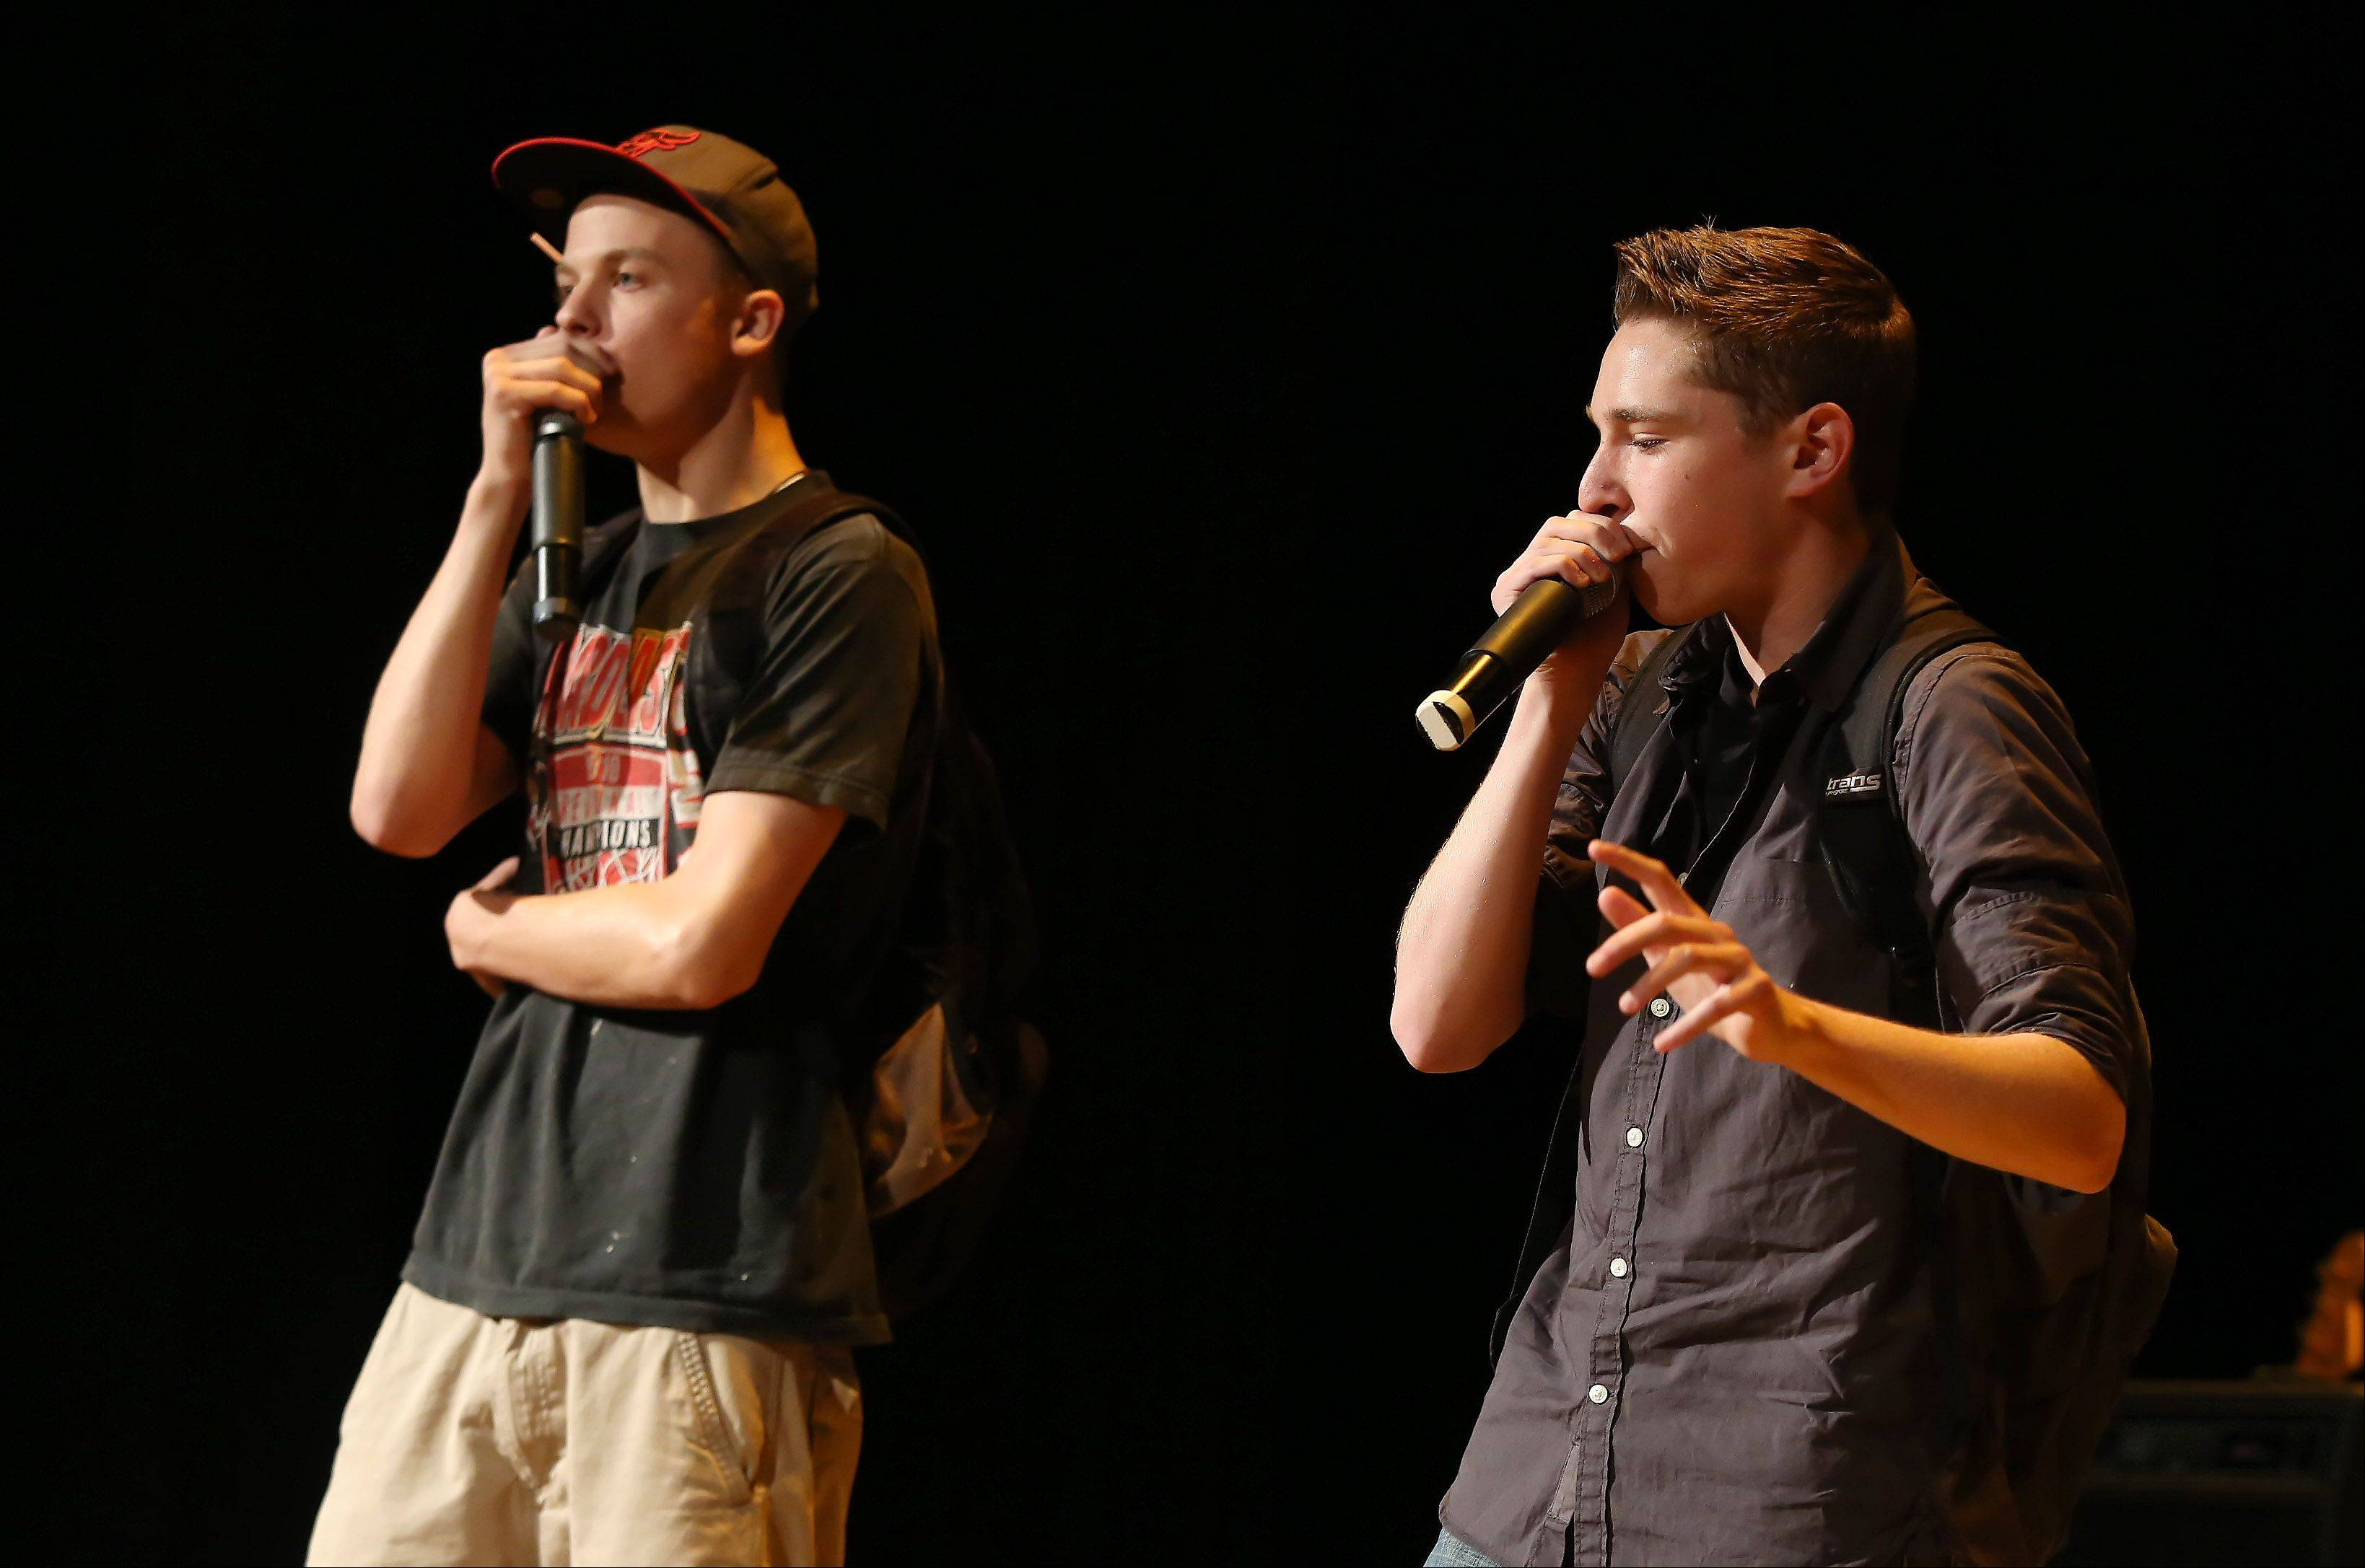 Luke Young, left, and Ronnie Greco of Chinese Take Out perform beatboxing Sunday during the second round of performances by finalists of the Suburban Chicago's Got Talent competition at the Metropolis Performing Arts Centre in Arlington Heights. The summer long talent contest is presented by the Daily Herald and sponsored by the Arlington Heights Chamber of Commerce.